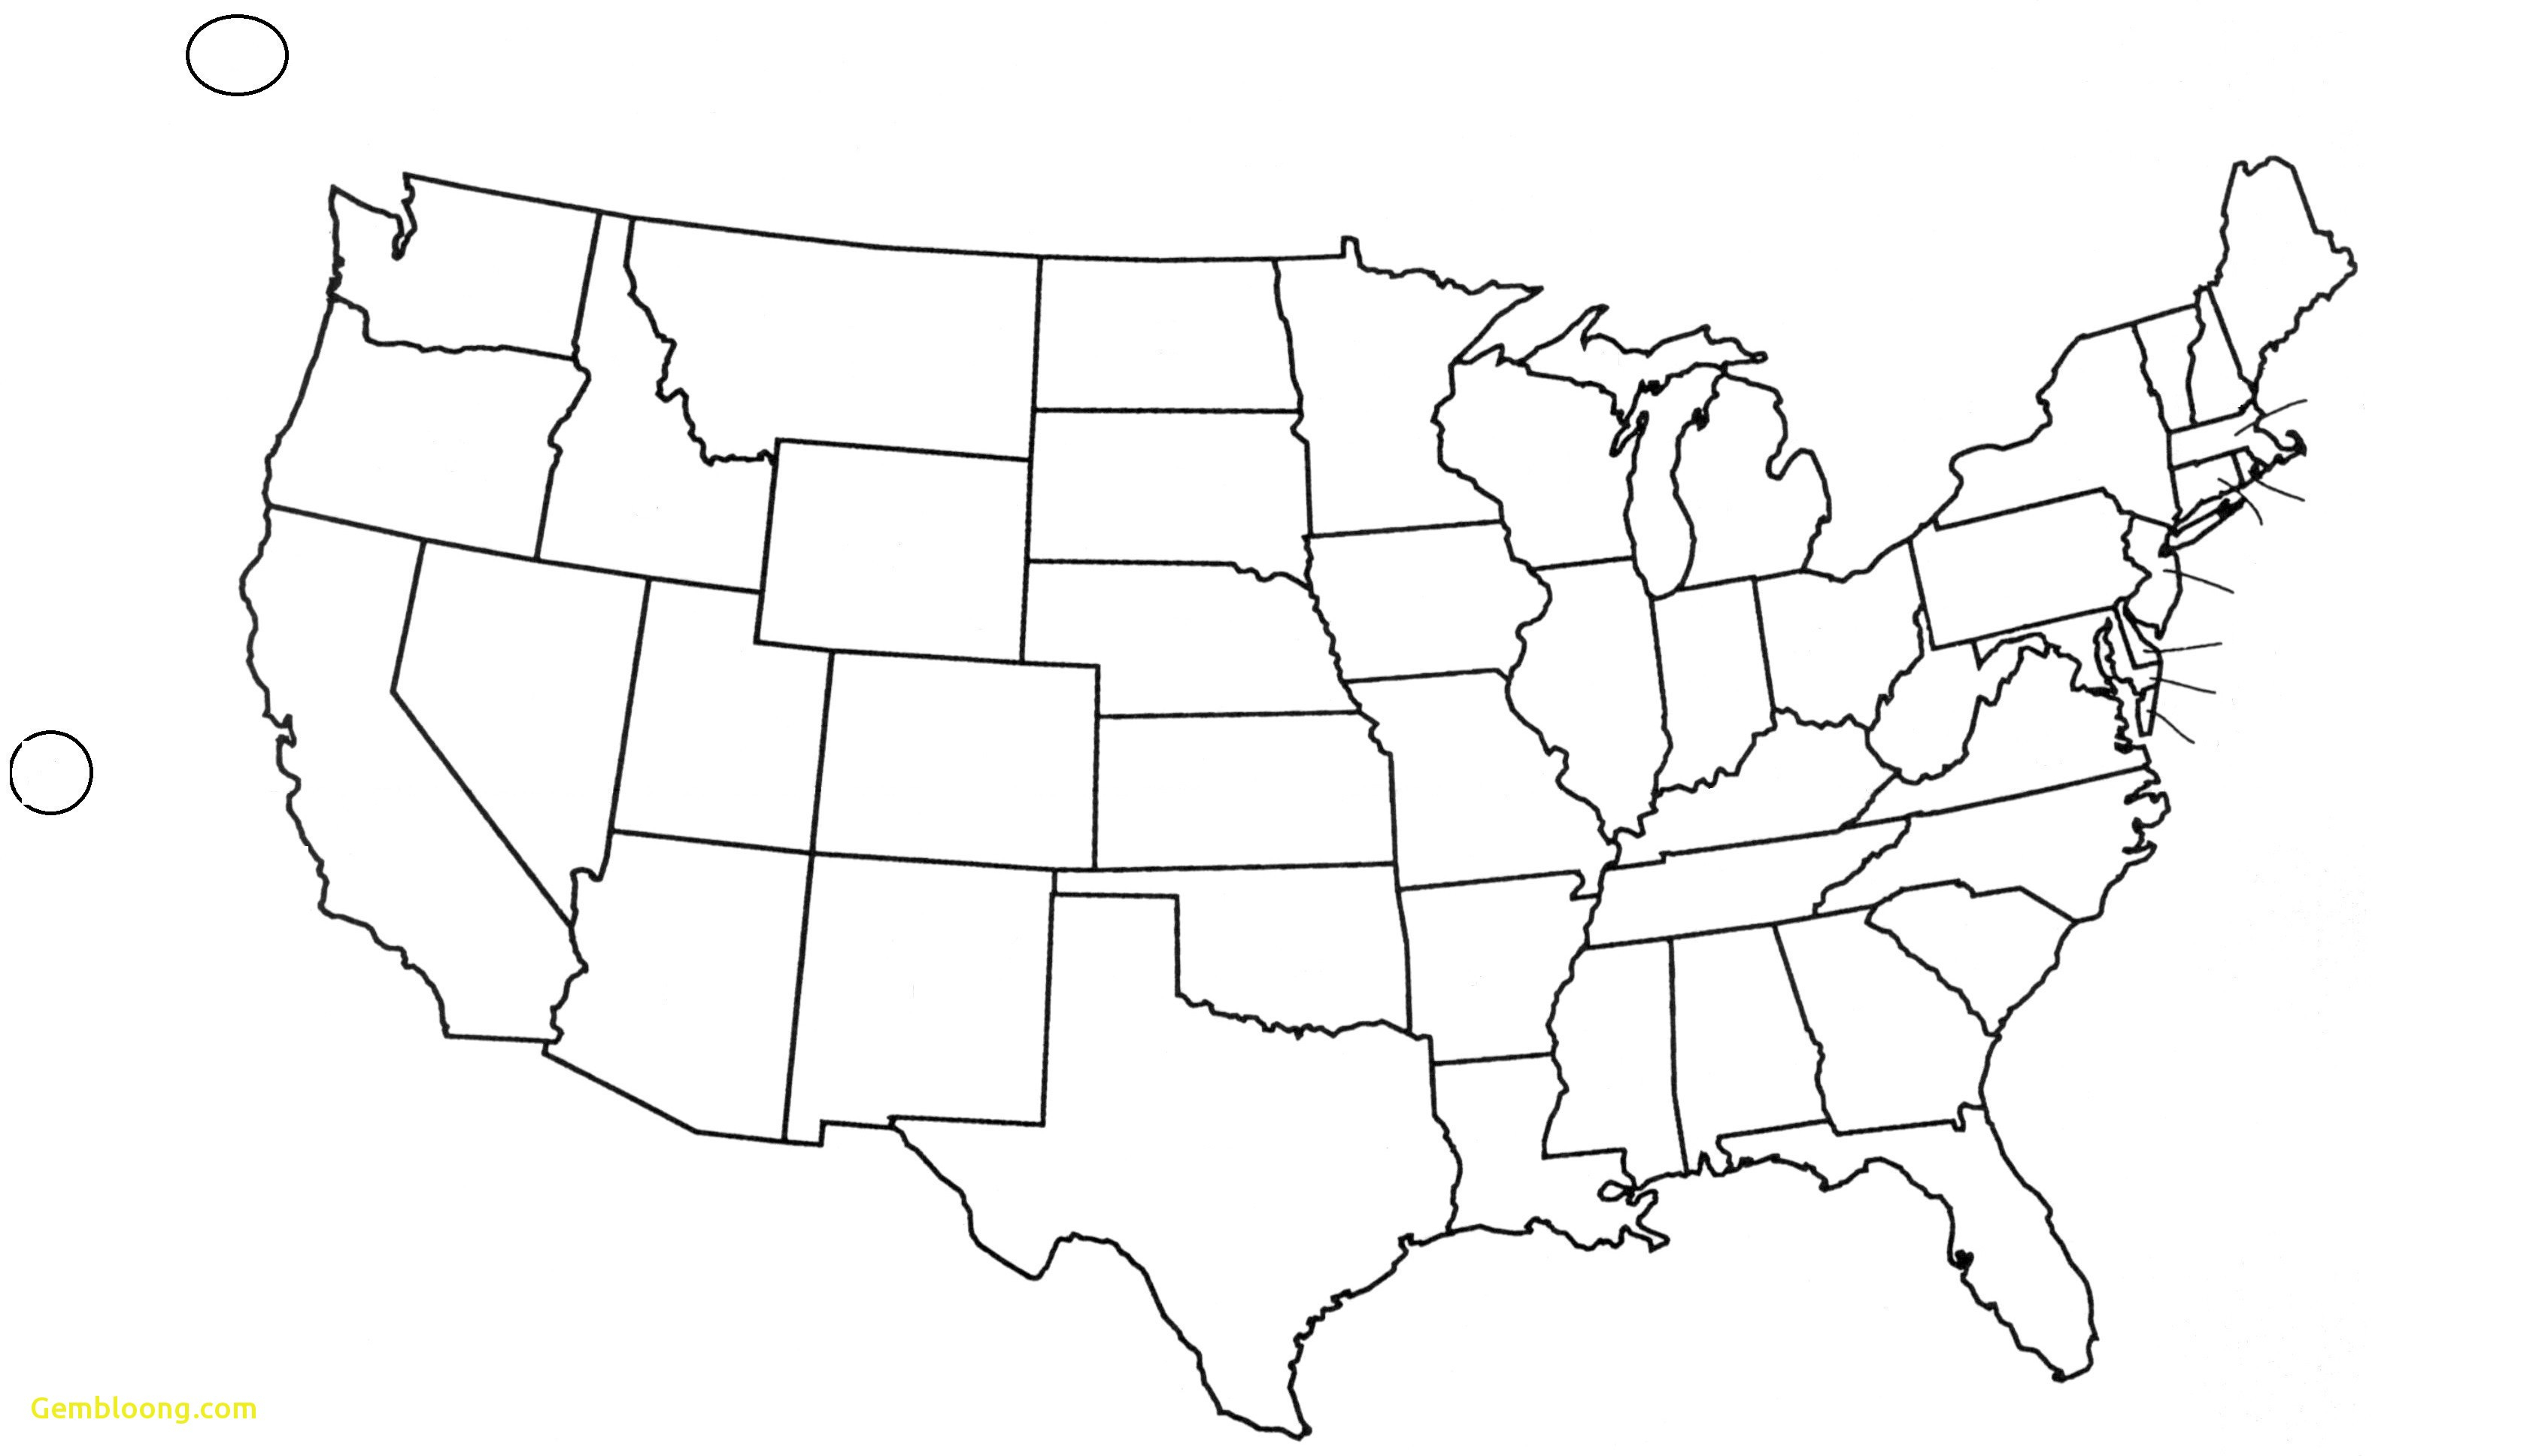 United States Map Blank Outline Fresh Free Printable Us With ... on united states map coloring worksheet, united states map black and white, united states map full, united states map blackline master, united states map worksheet pdf, united states map outline vector, united states map art, united states indian tribes map, united states state map printable, united states map 1867, united states time zone map,